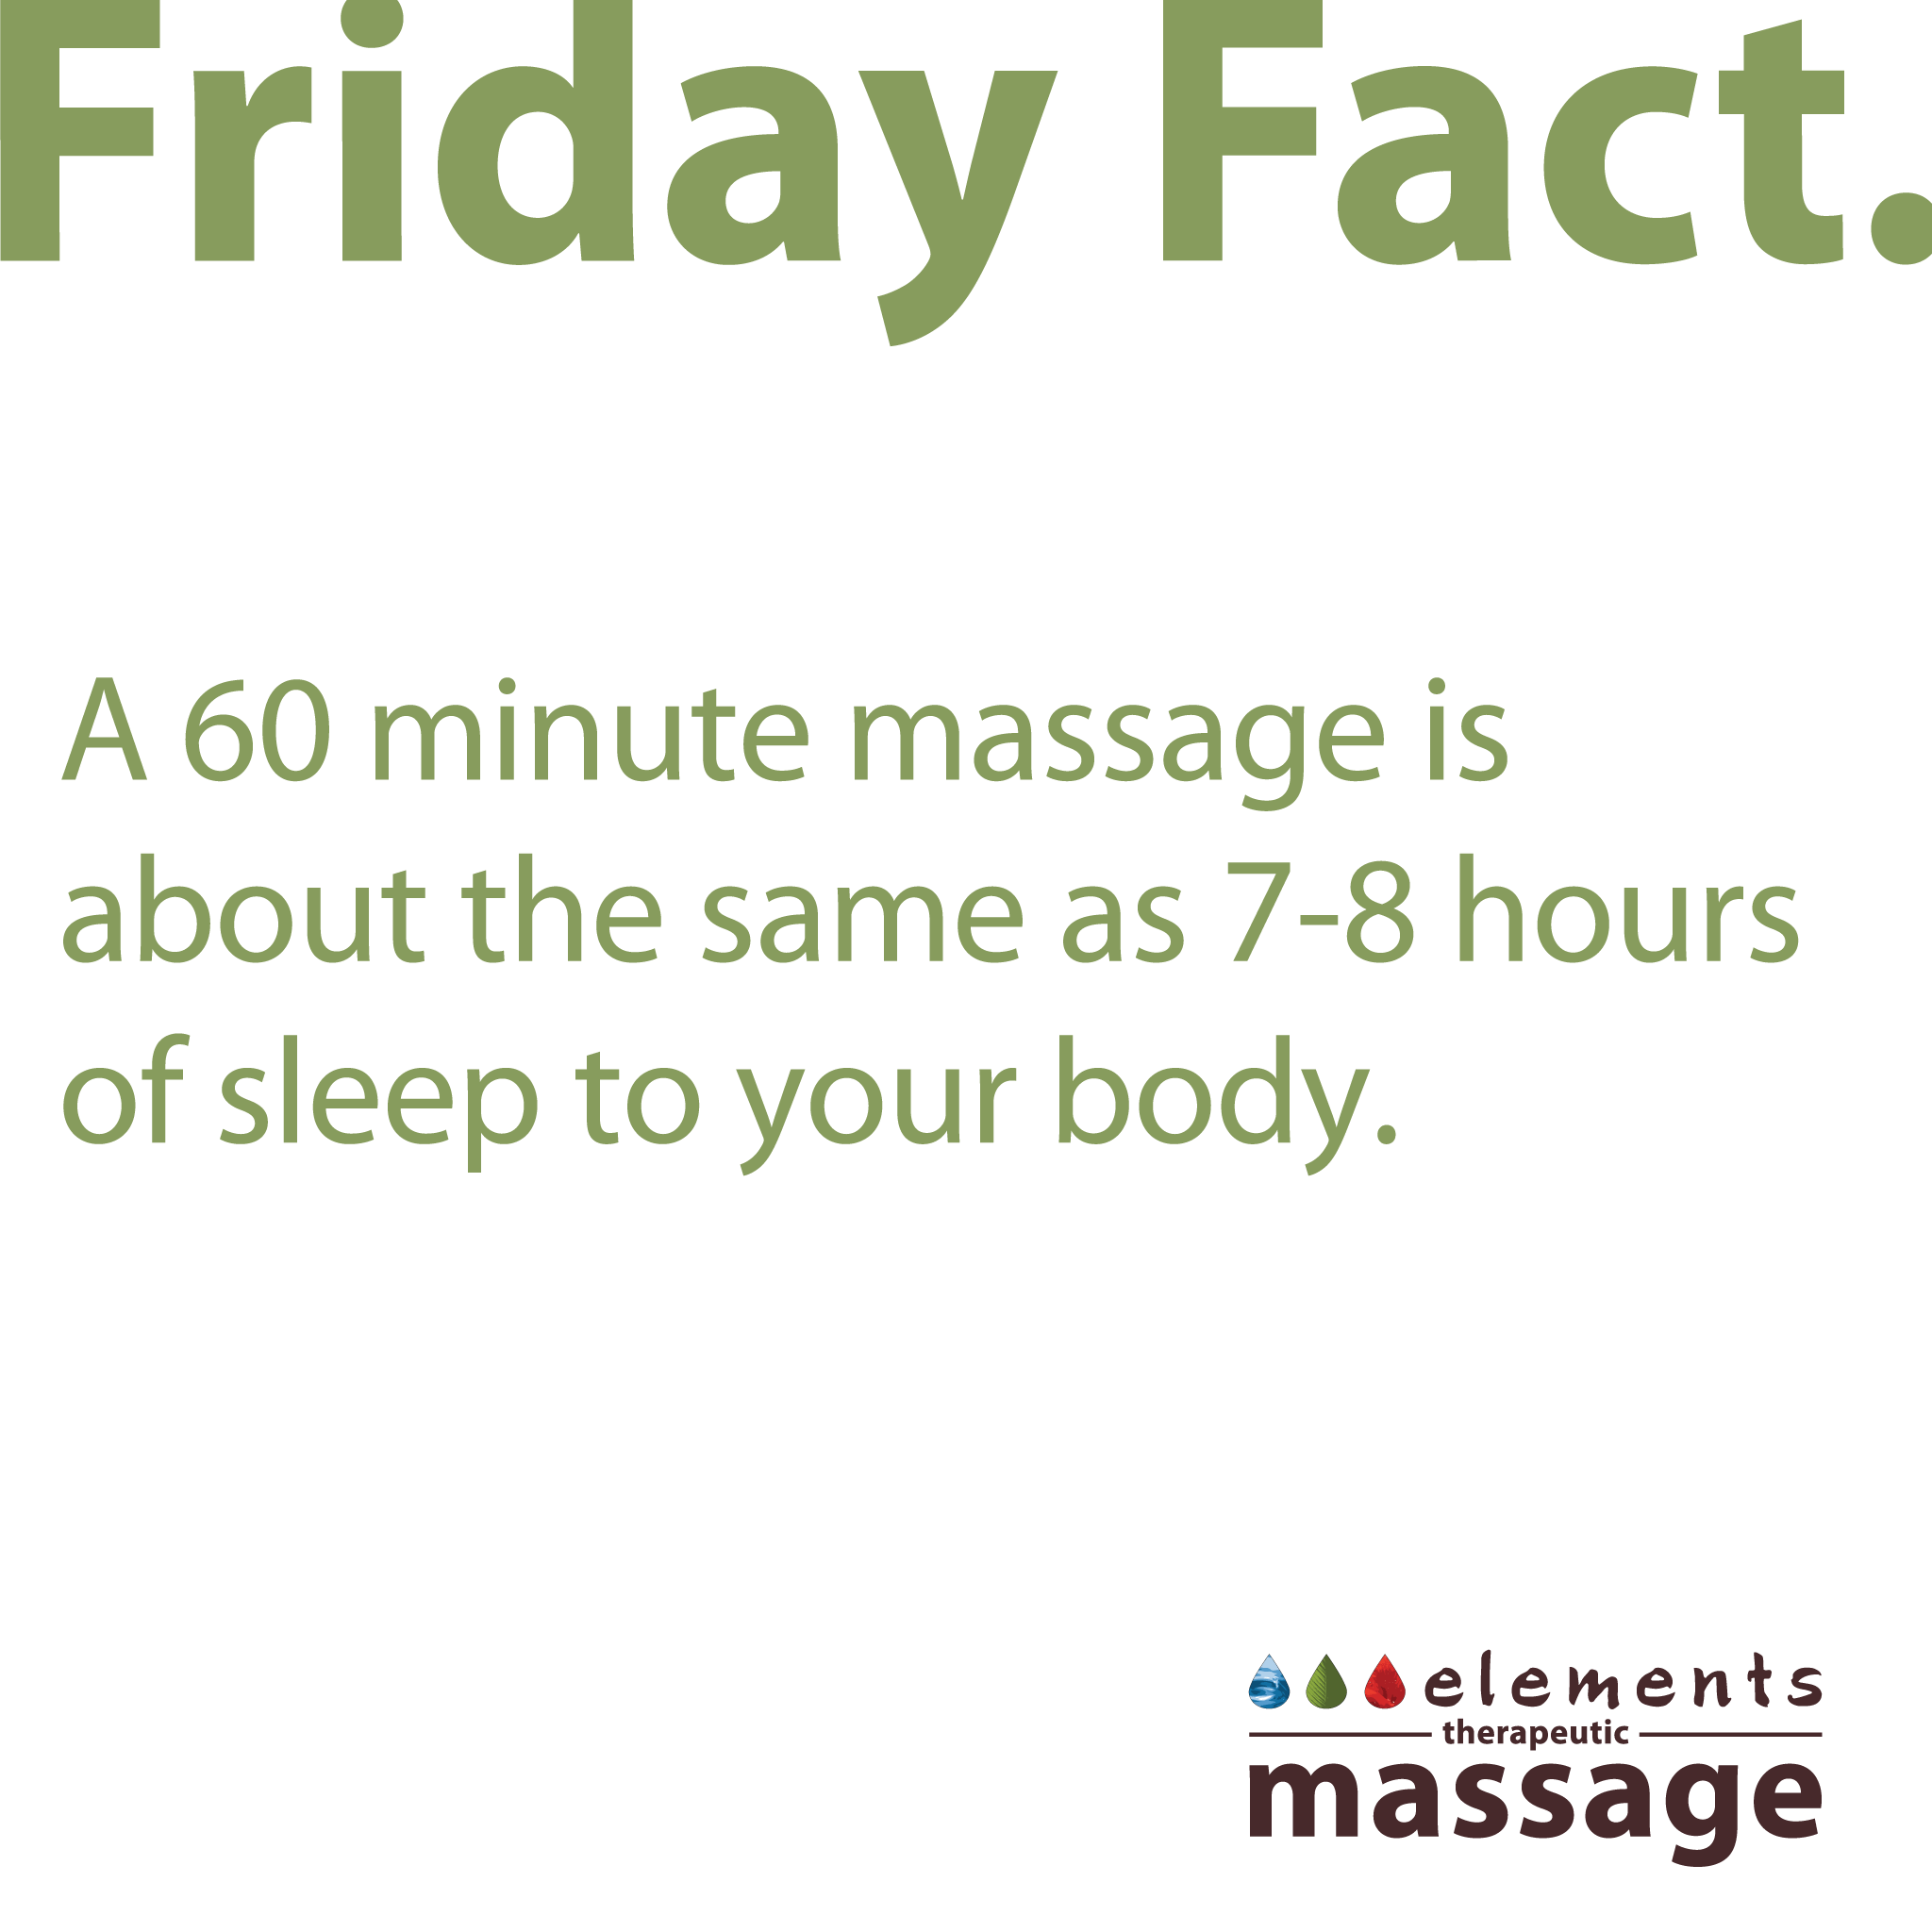 firstcorvallis firstcorvallis sport therapeutics com bits massage fact come to pressure point massage therapy in southfield mi for a fantastic massage call us now at to book your appointment feel to